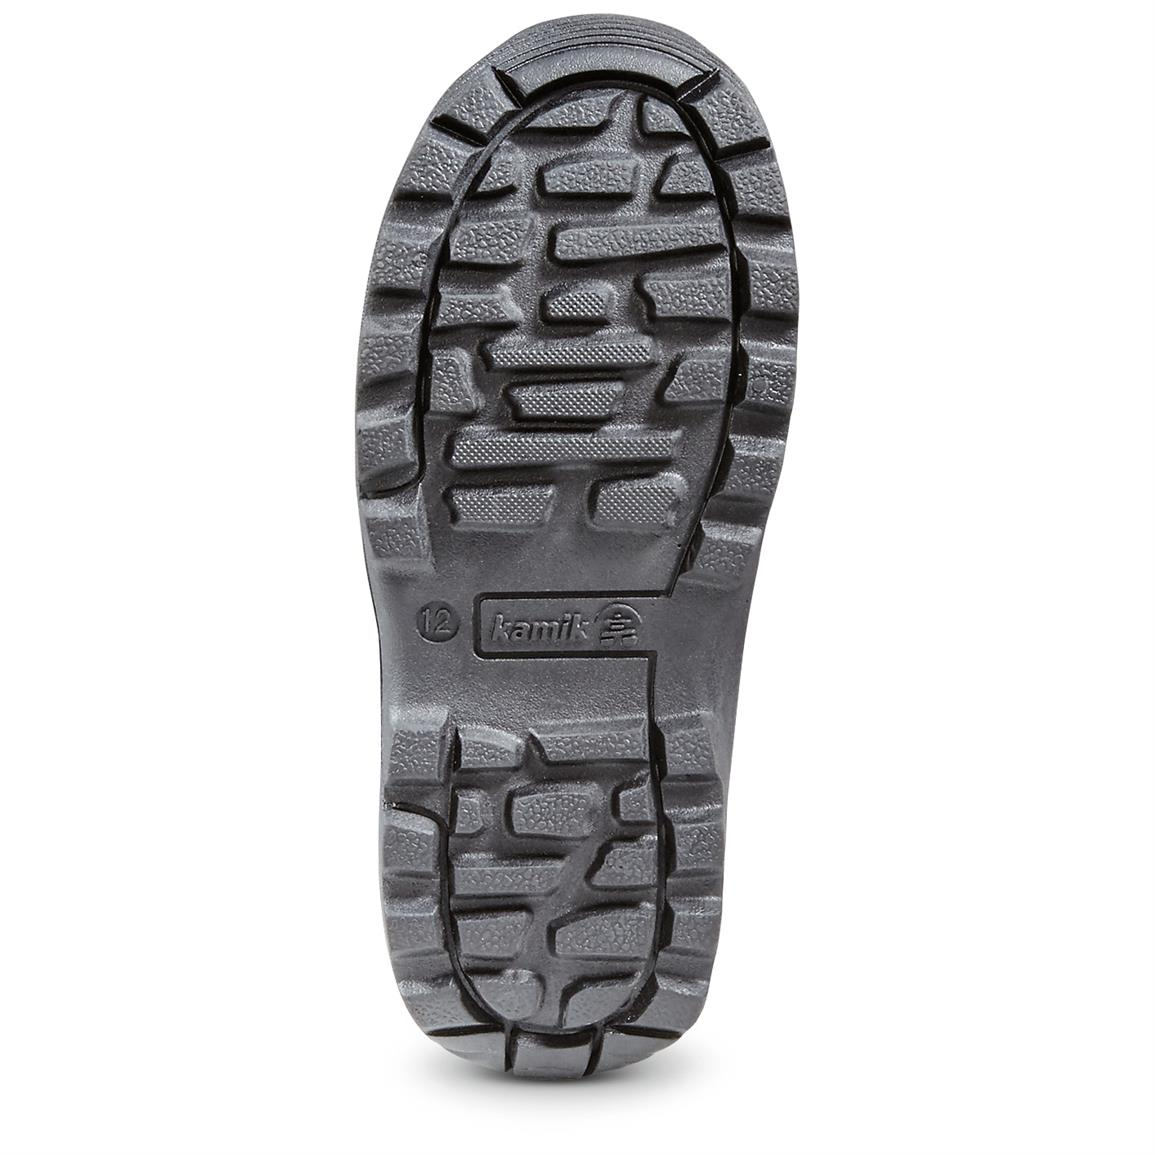 Rubber sure traction outsole